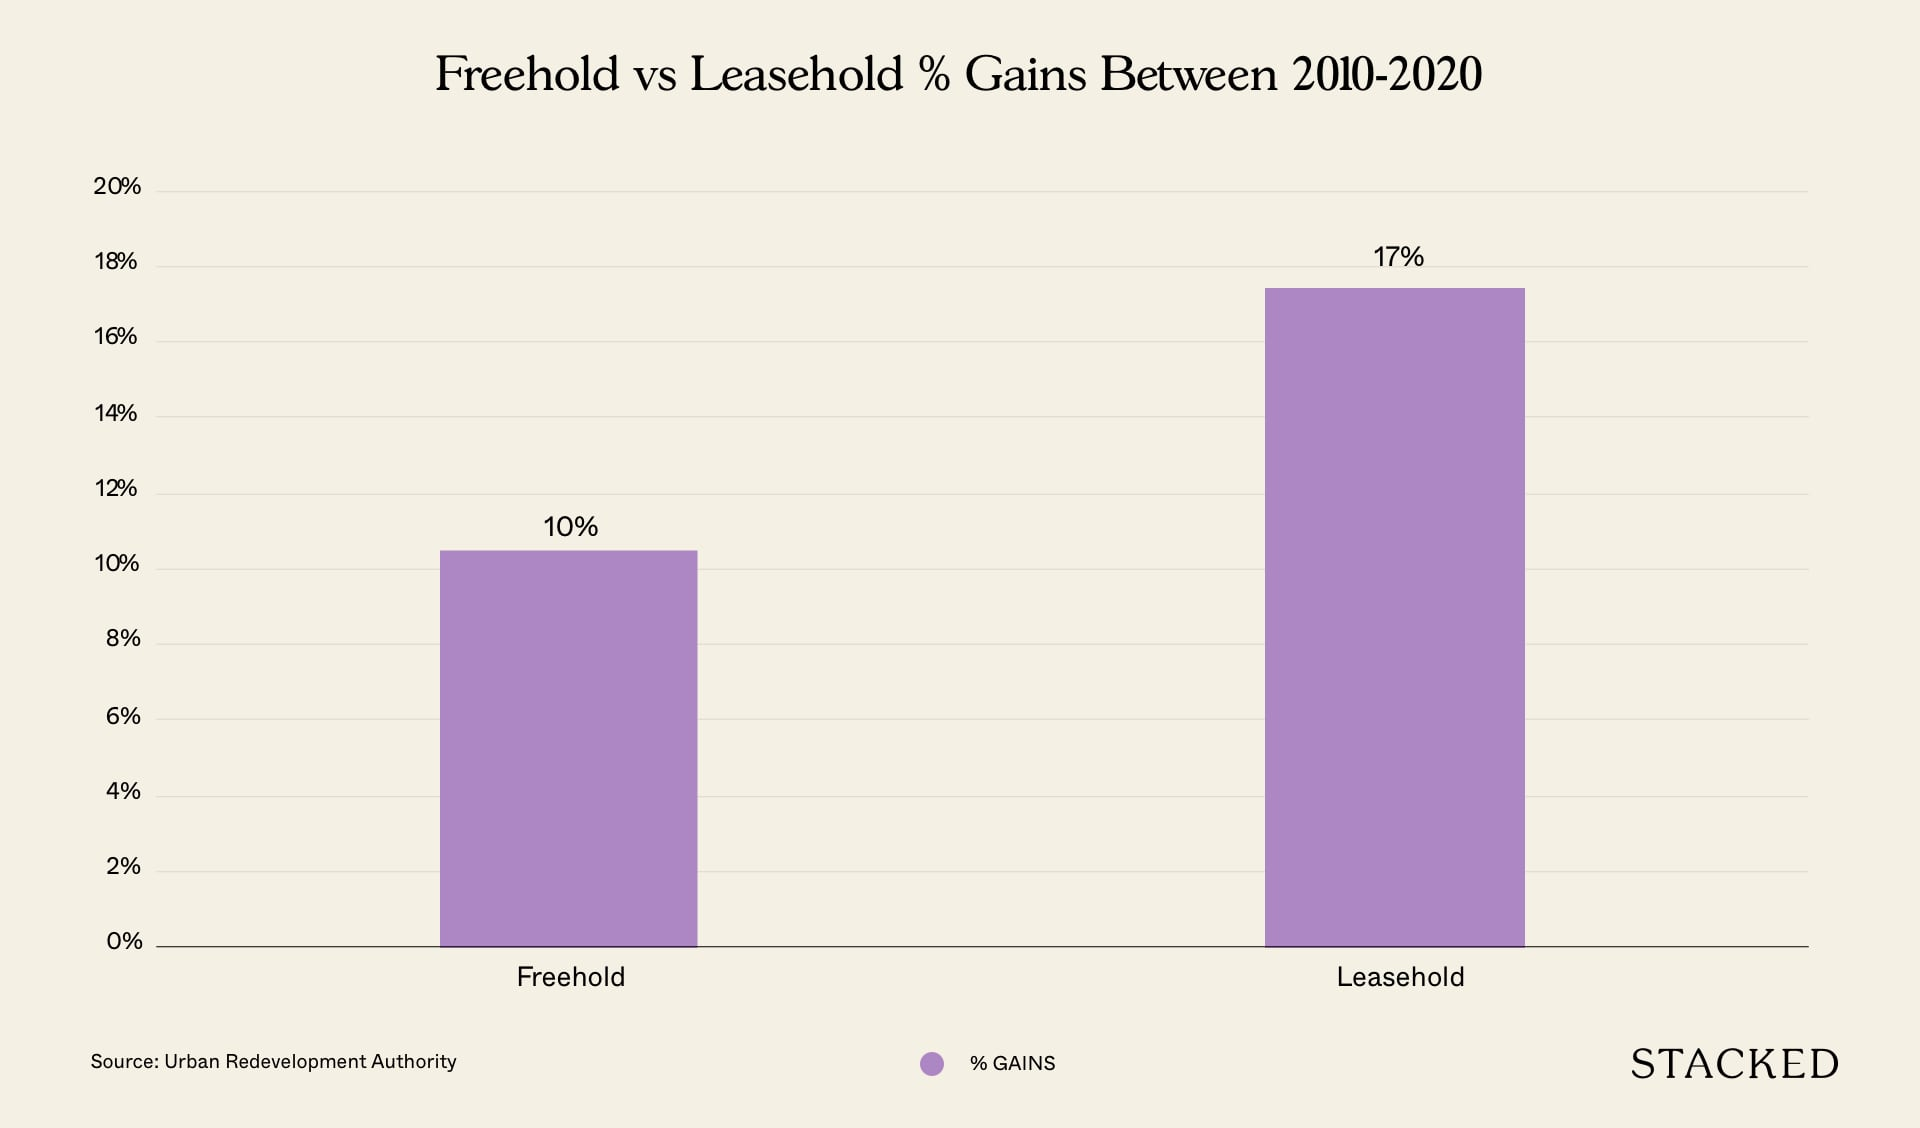 freehold vs leasehold gains